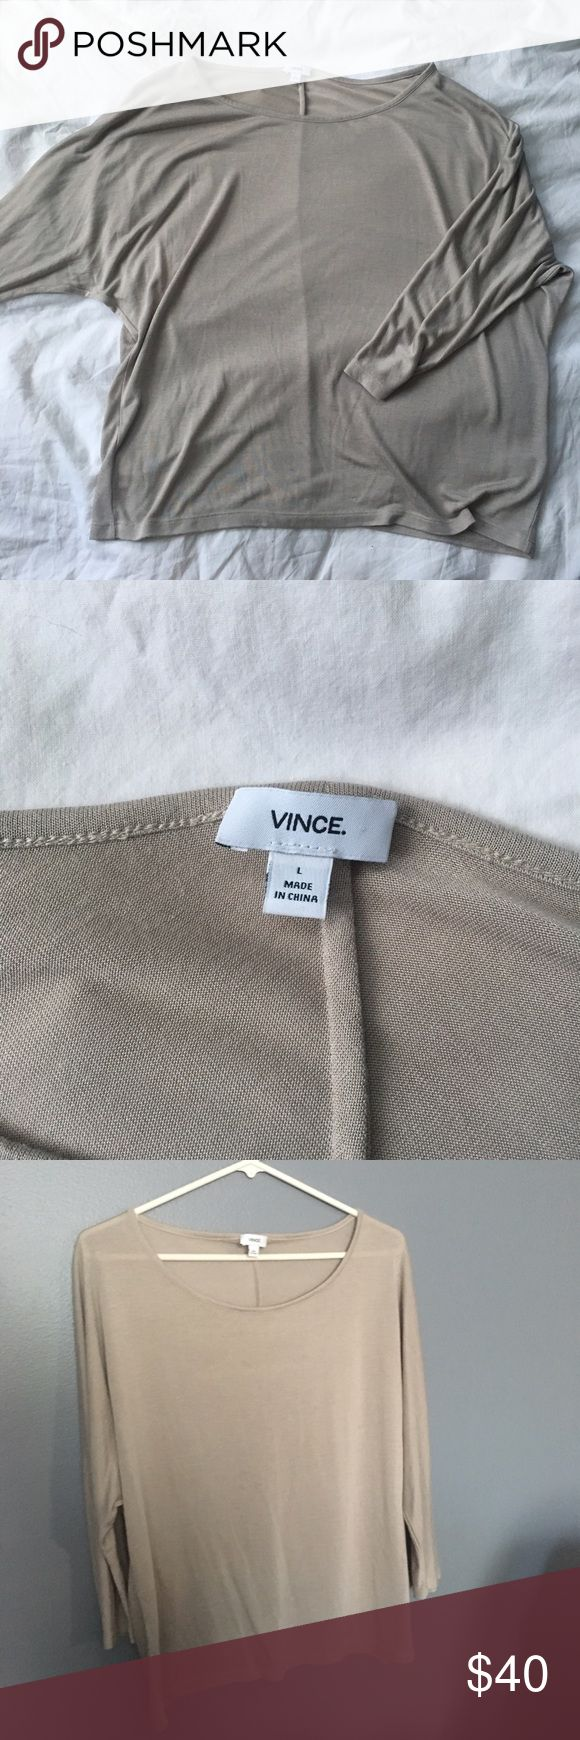 Vince beige tee This tee is super comfortable and versatile with any style and outfit! Super lightweight and soft, the inner tag has fallen off so I'm not sure what the material composition is. Slight batwing sleeve; tightens at the elbow, loosens at the shoulder. Wide scoopneck. Great condition! No flaws! Vince Tops Tees - Long Sleeve